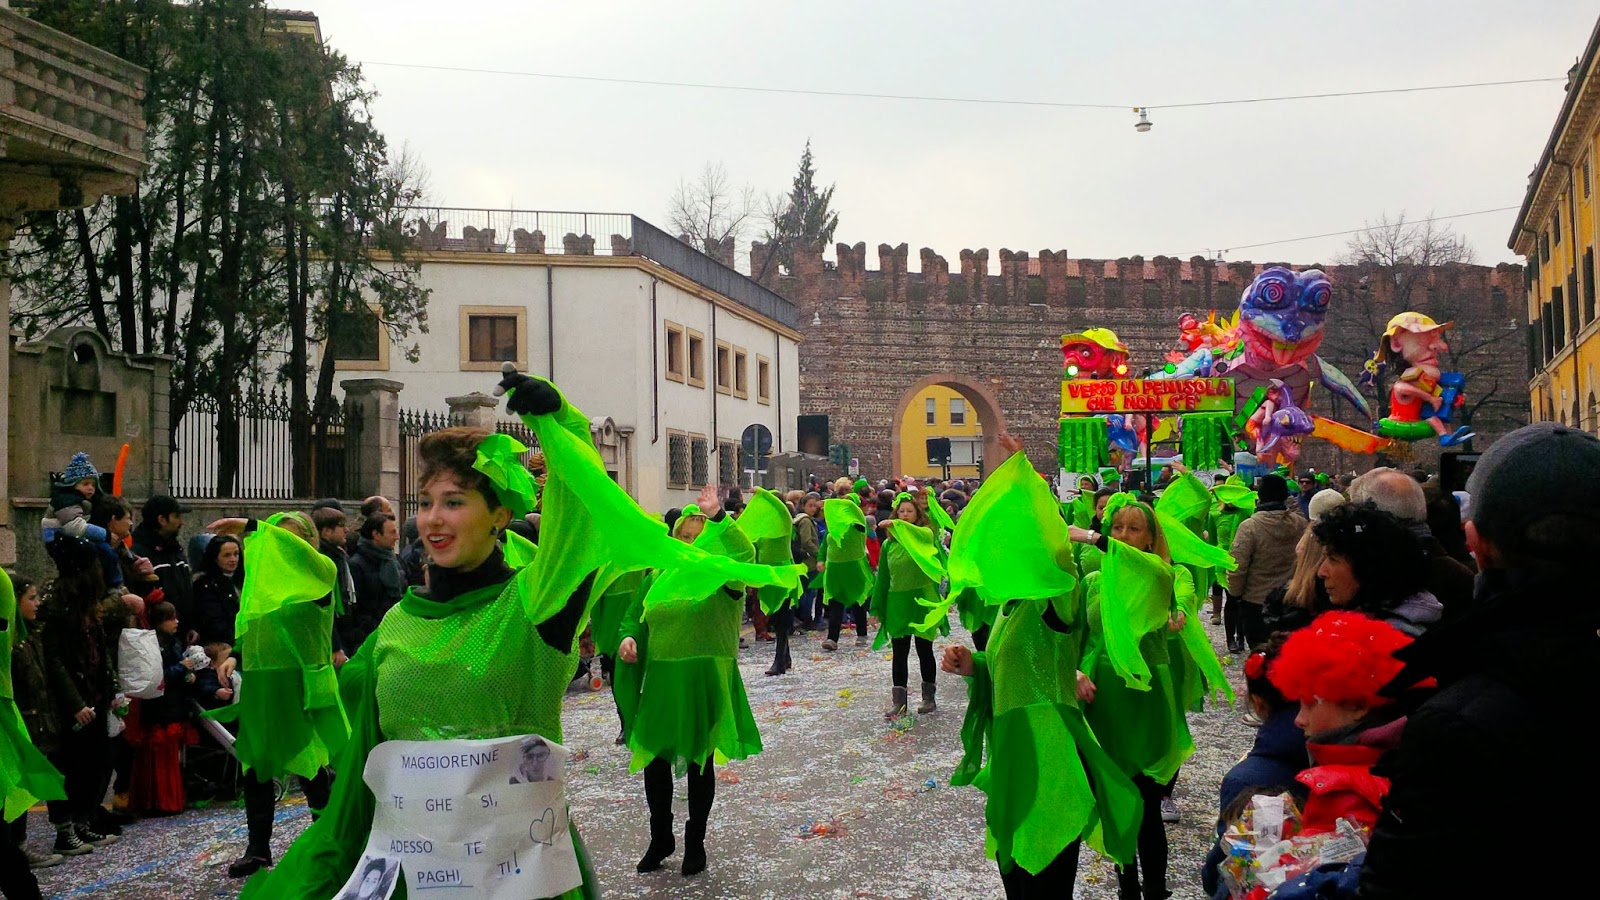 People dancing at the parade for Verona Carnival